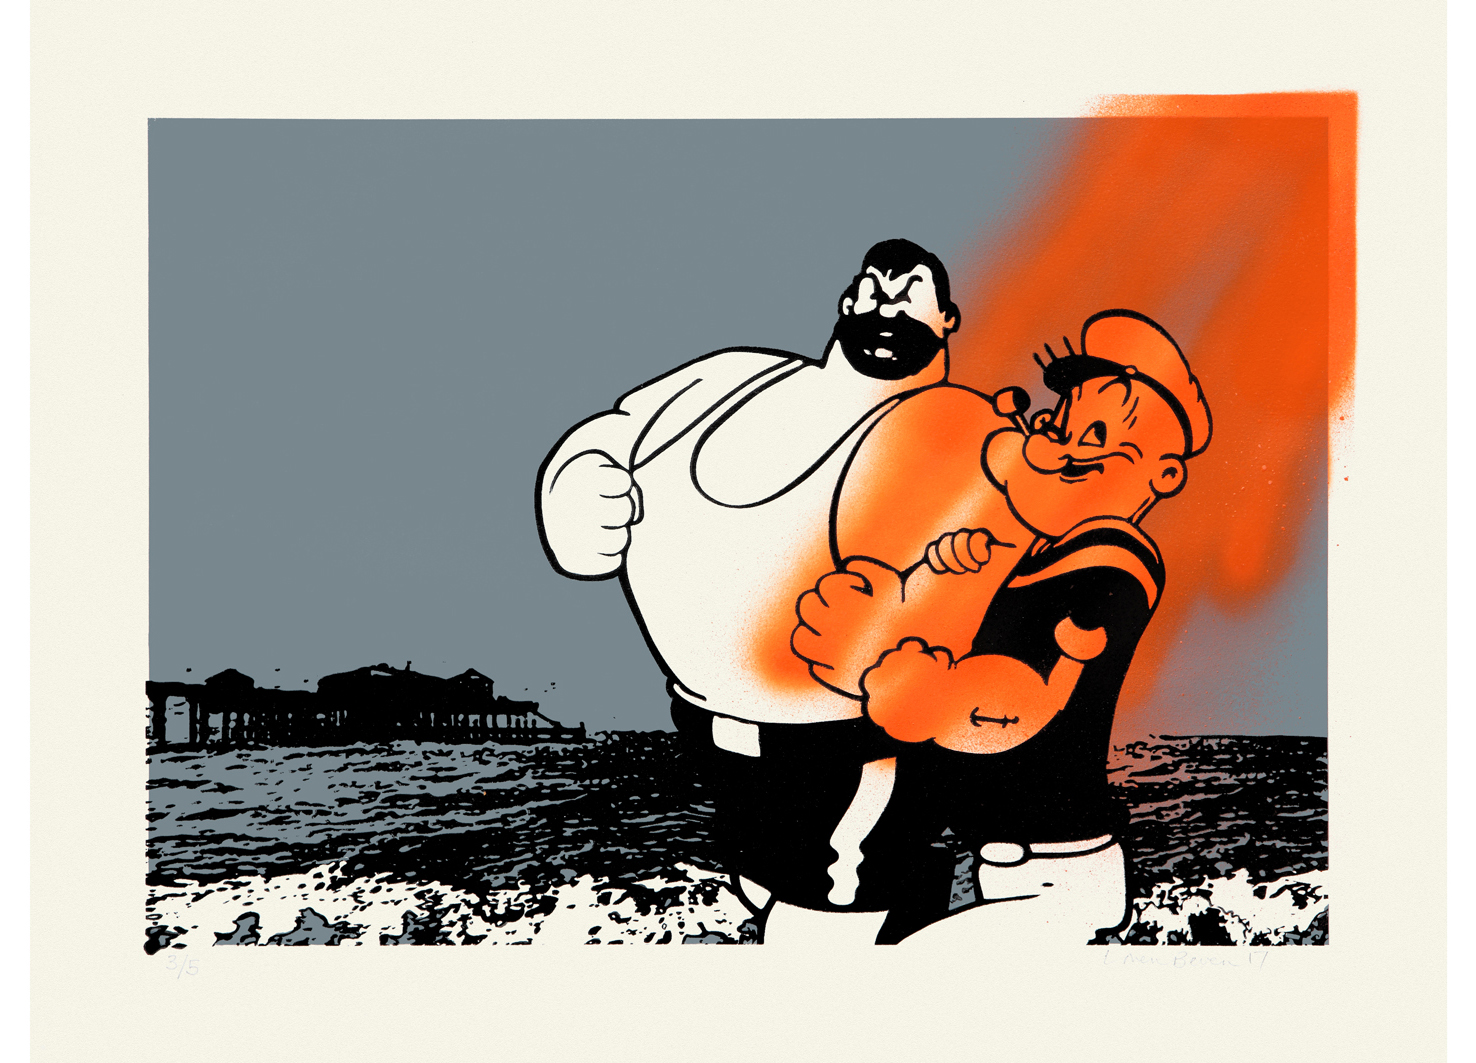 Popeye & Brutus Do Deal  Screen print & spray paint on paper| 35 x 50cm Signed limited edition of 5 | £395 (2 available)